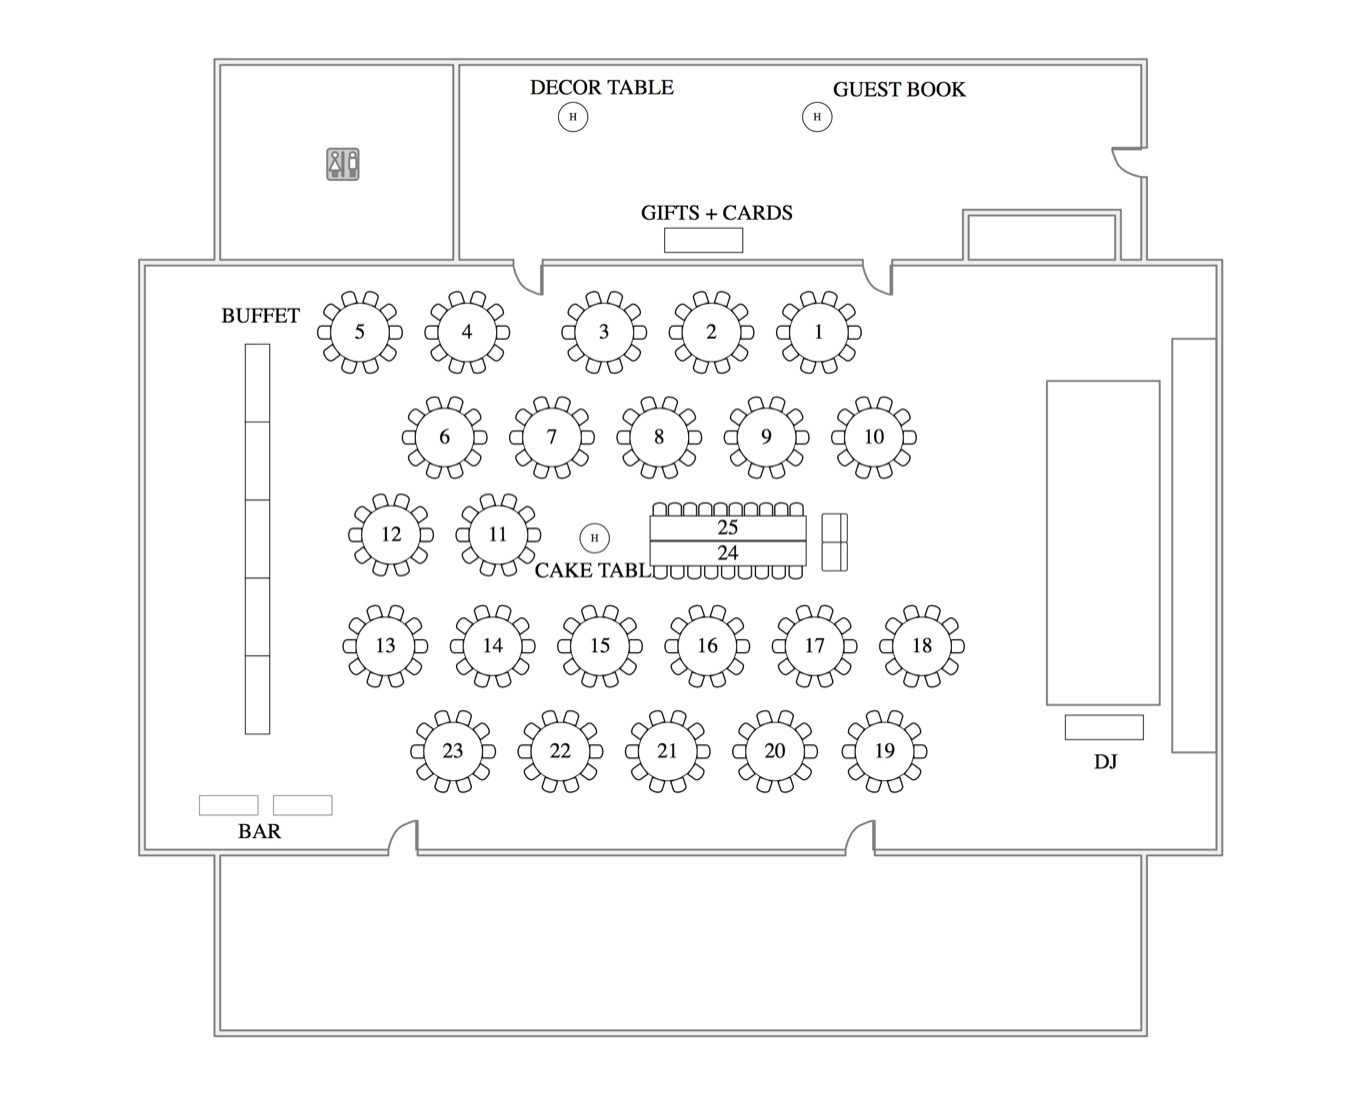 WEDDING ROOM LAYOUT FOR 250 WITH HARVEST HEAD TABLE